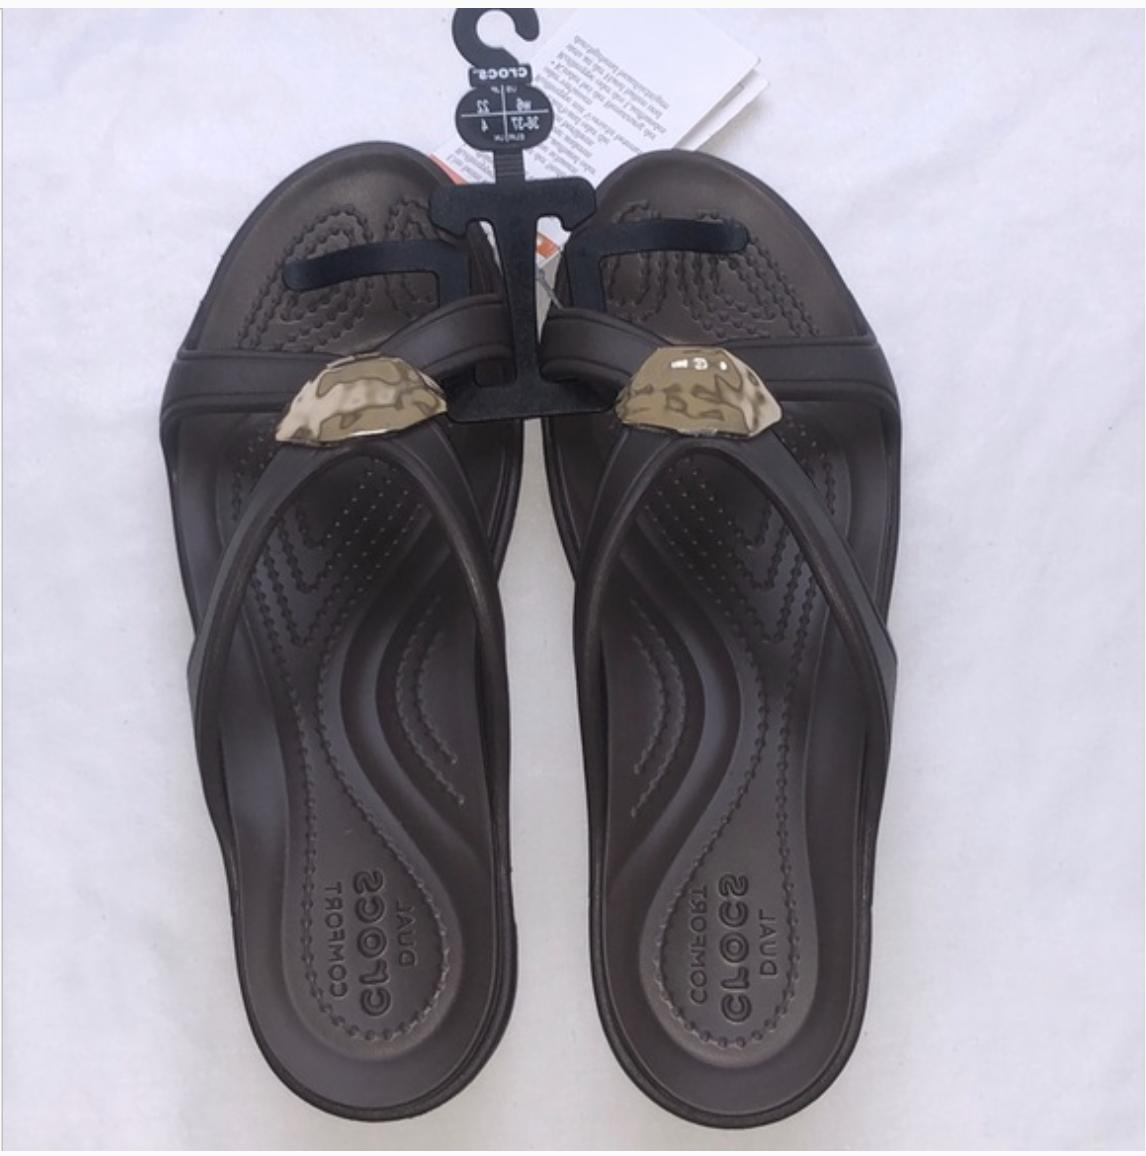 New Wedge Sandals Brown Size 8